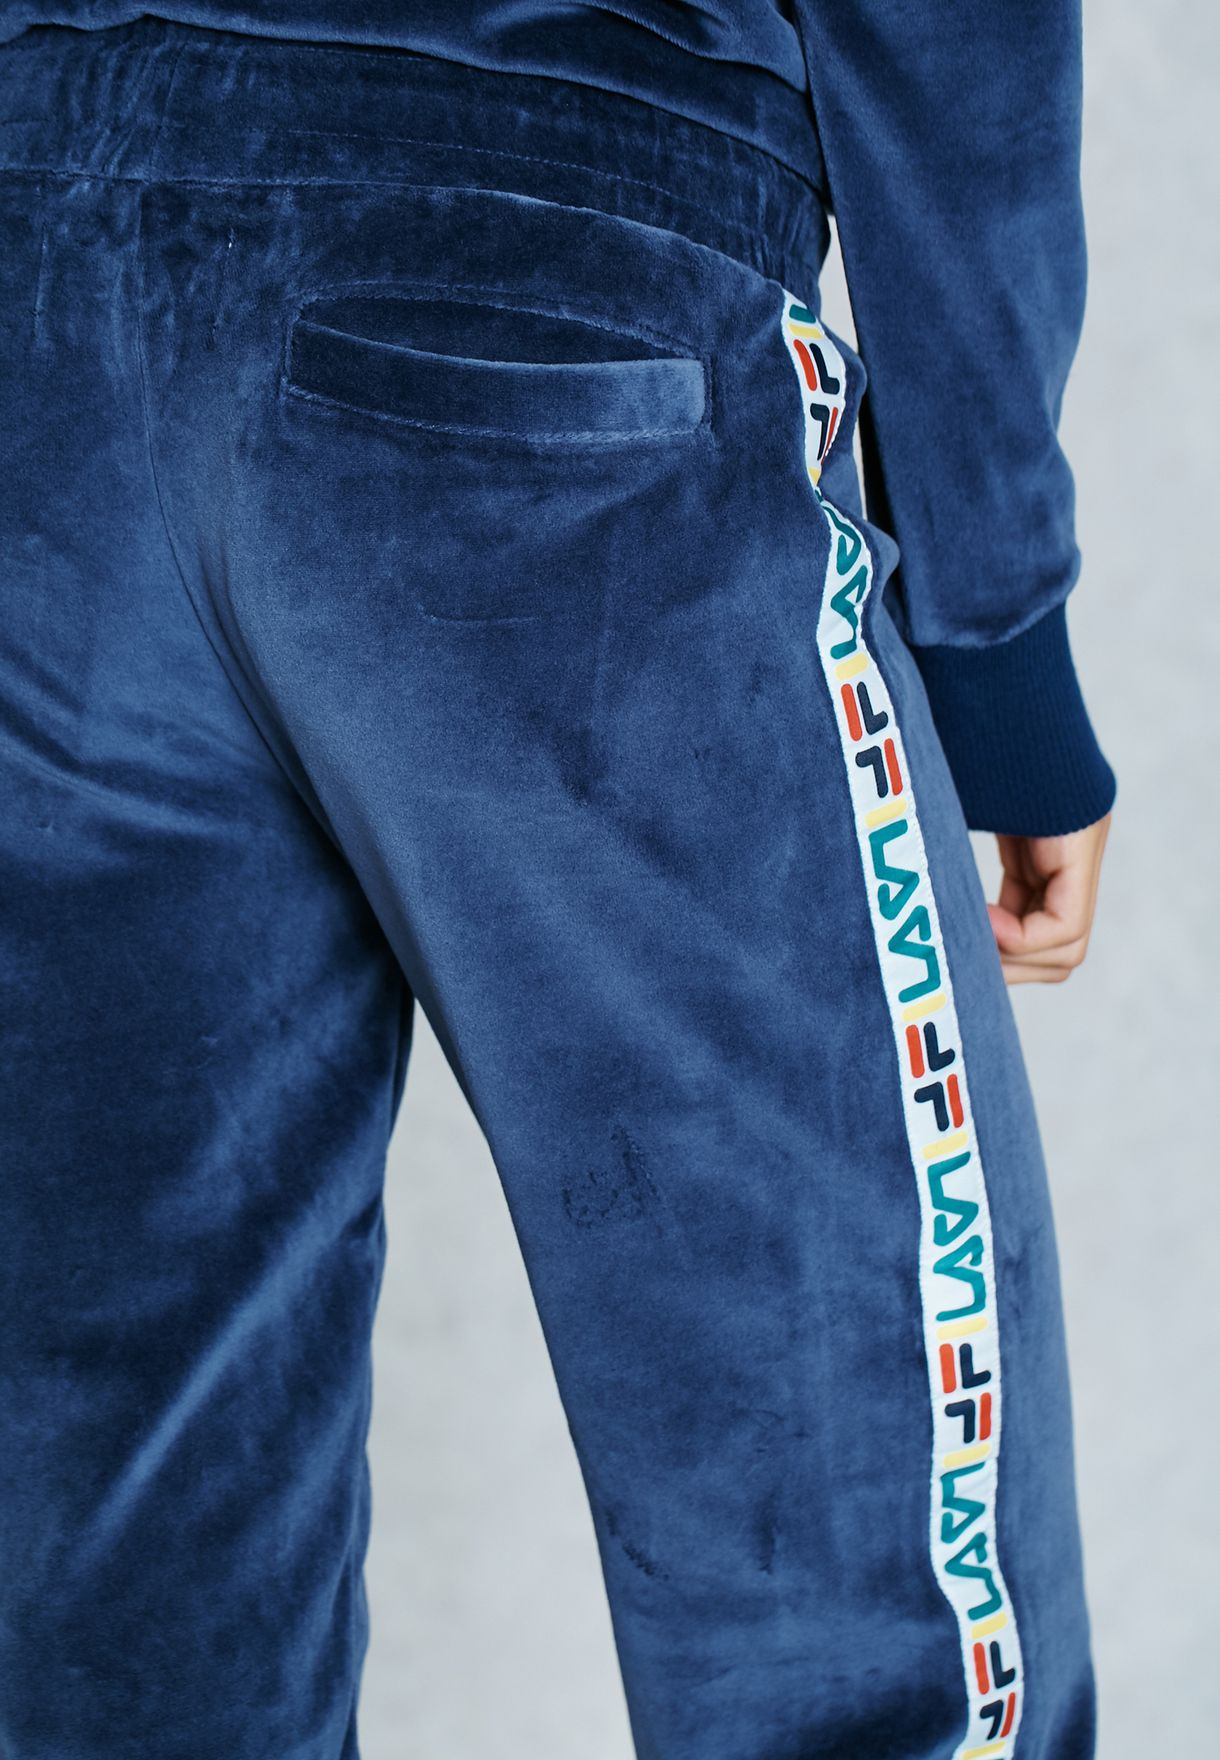 2b4175bd7658 Shop Fila blue Logo Trim Sweatpants FW16BKW014 for Women in Saudi ...